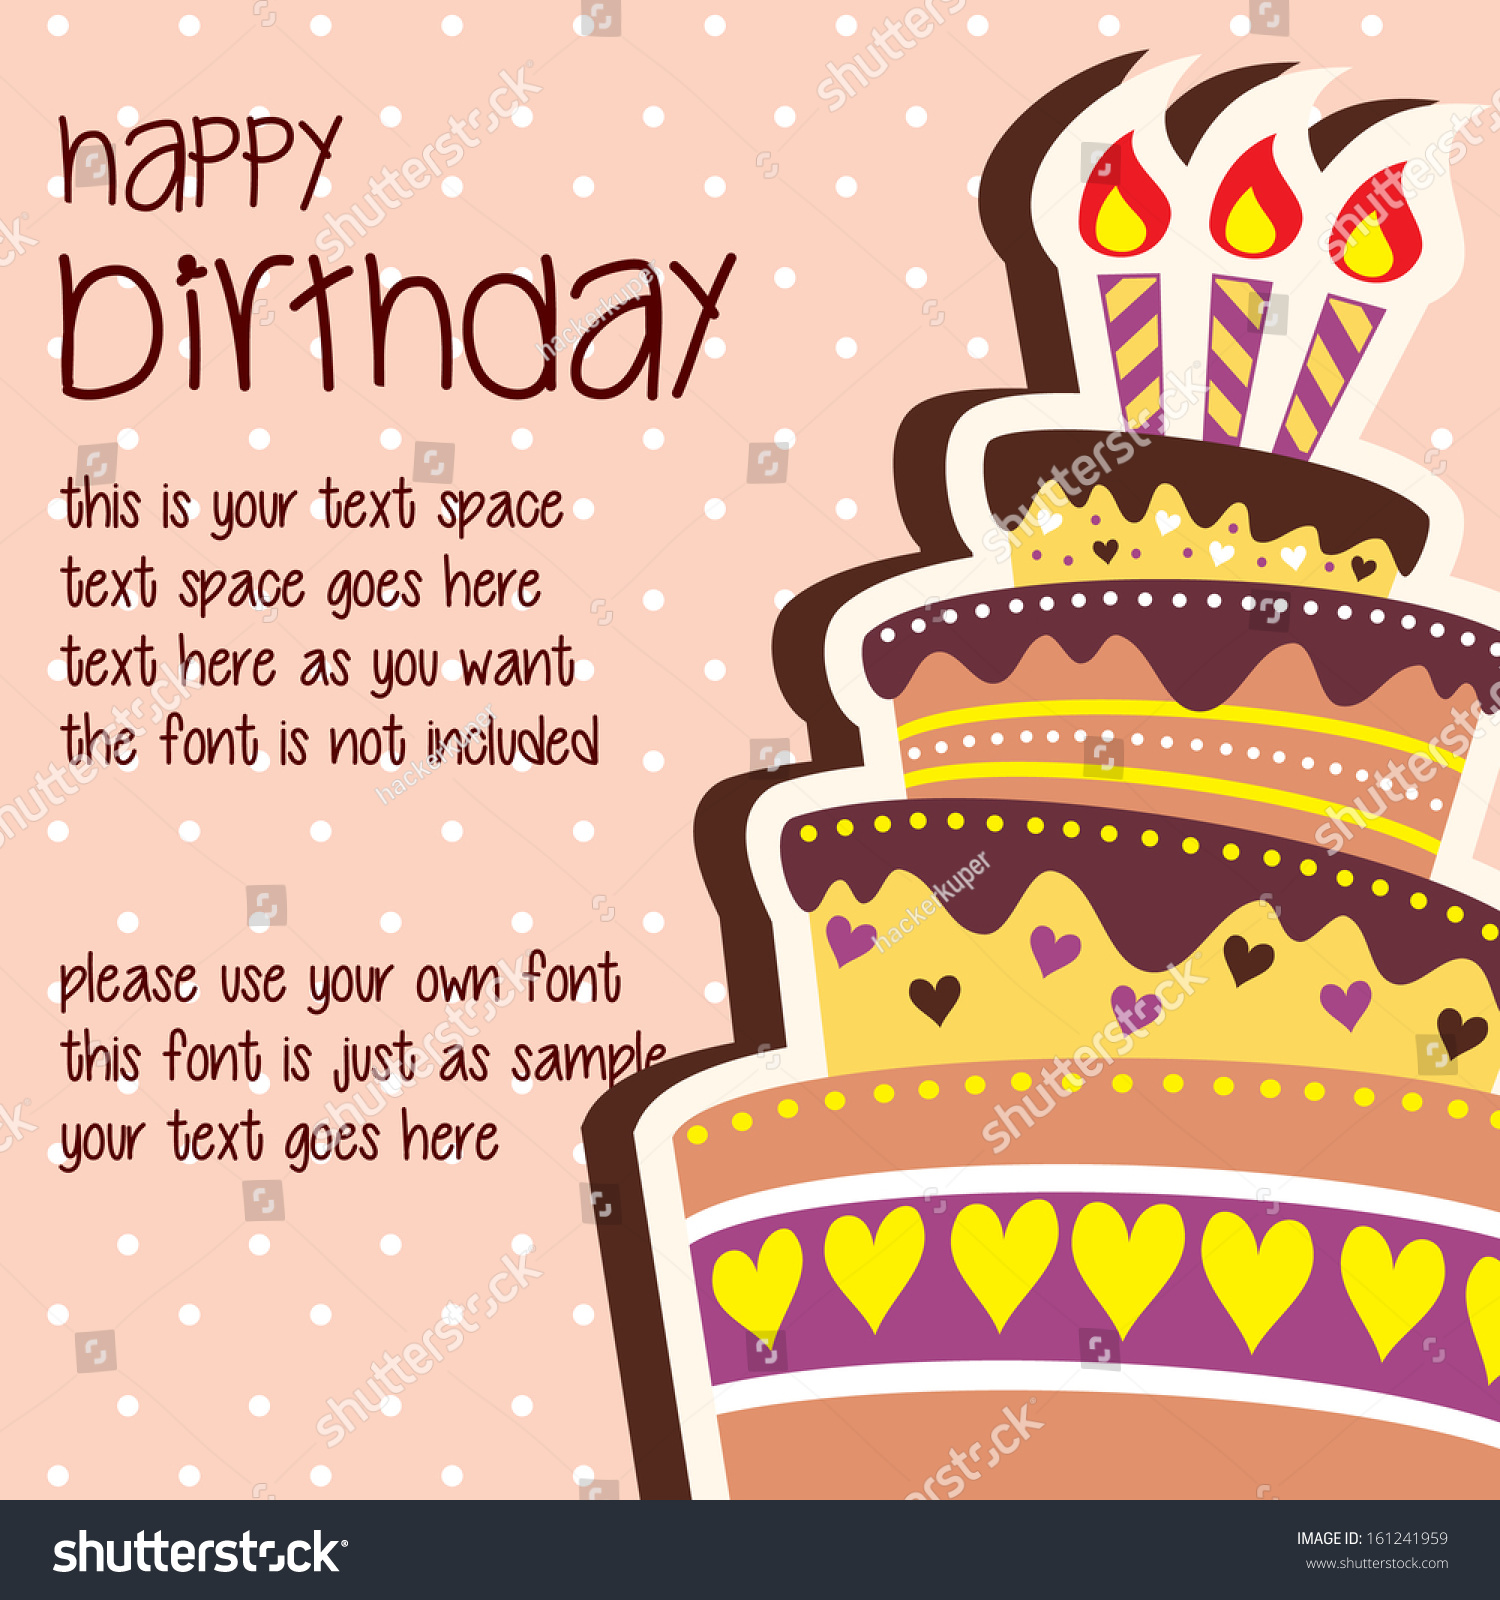 Happy Birthday Card Template Large Layered Vector 161241959 – Birthday Card Sample